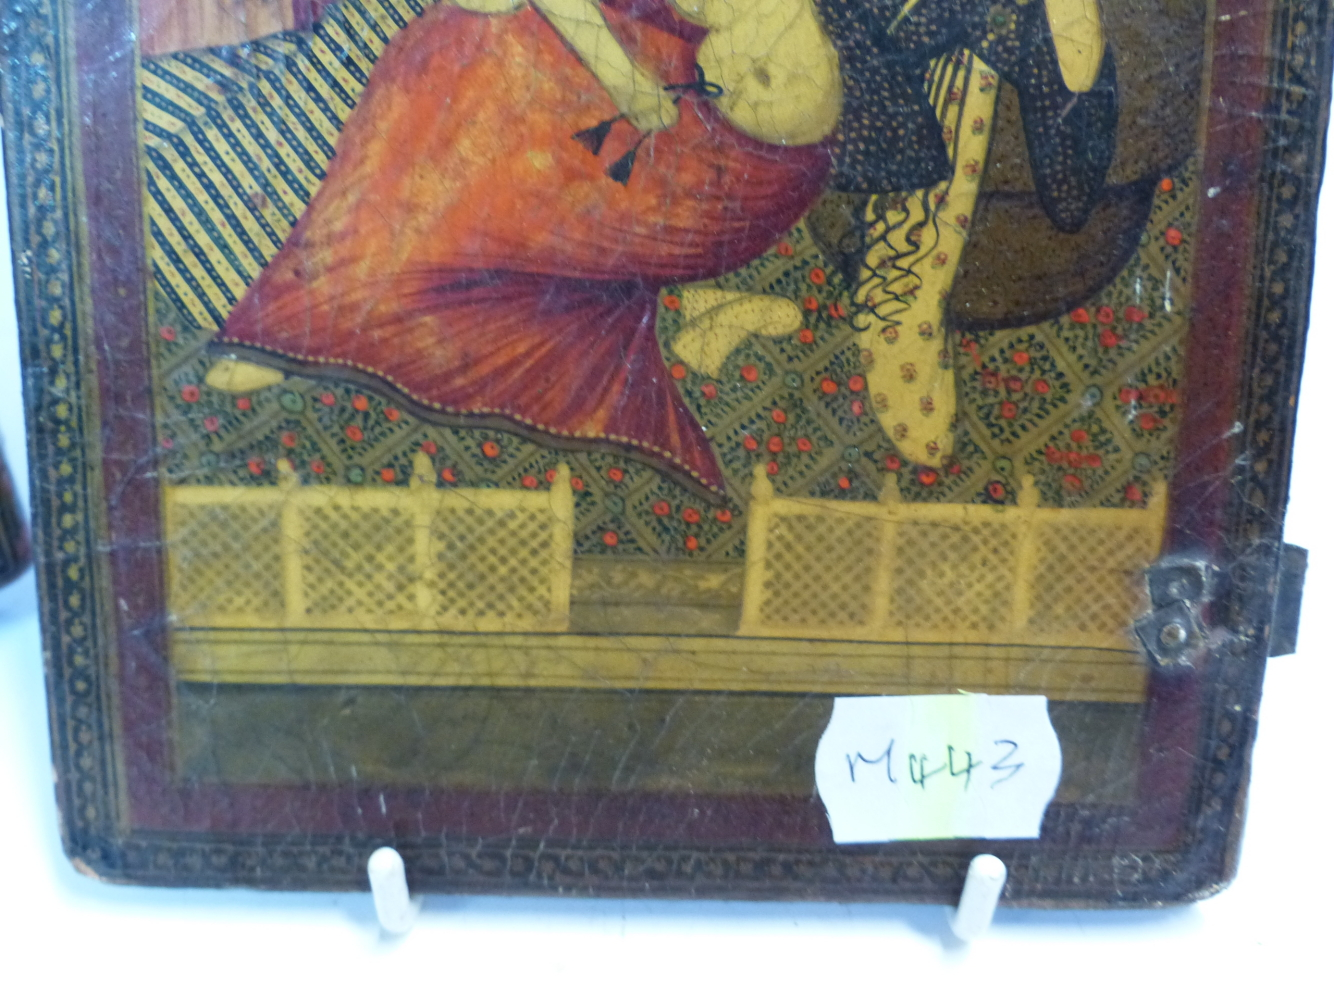 Lot 2333 - TWO PERSIAN LACQUER BOX LIDS, ONE PAINTED ON BOTH SIDES WITH ASLEEPING ATTENDANTS